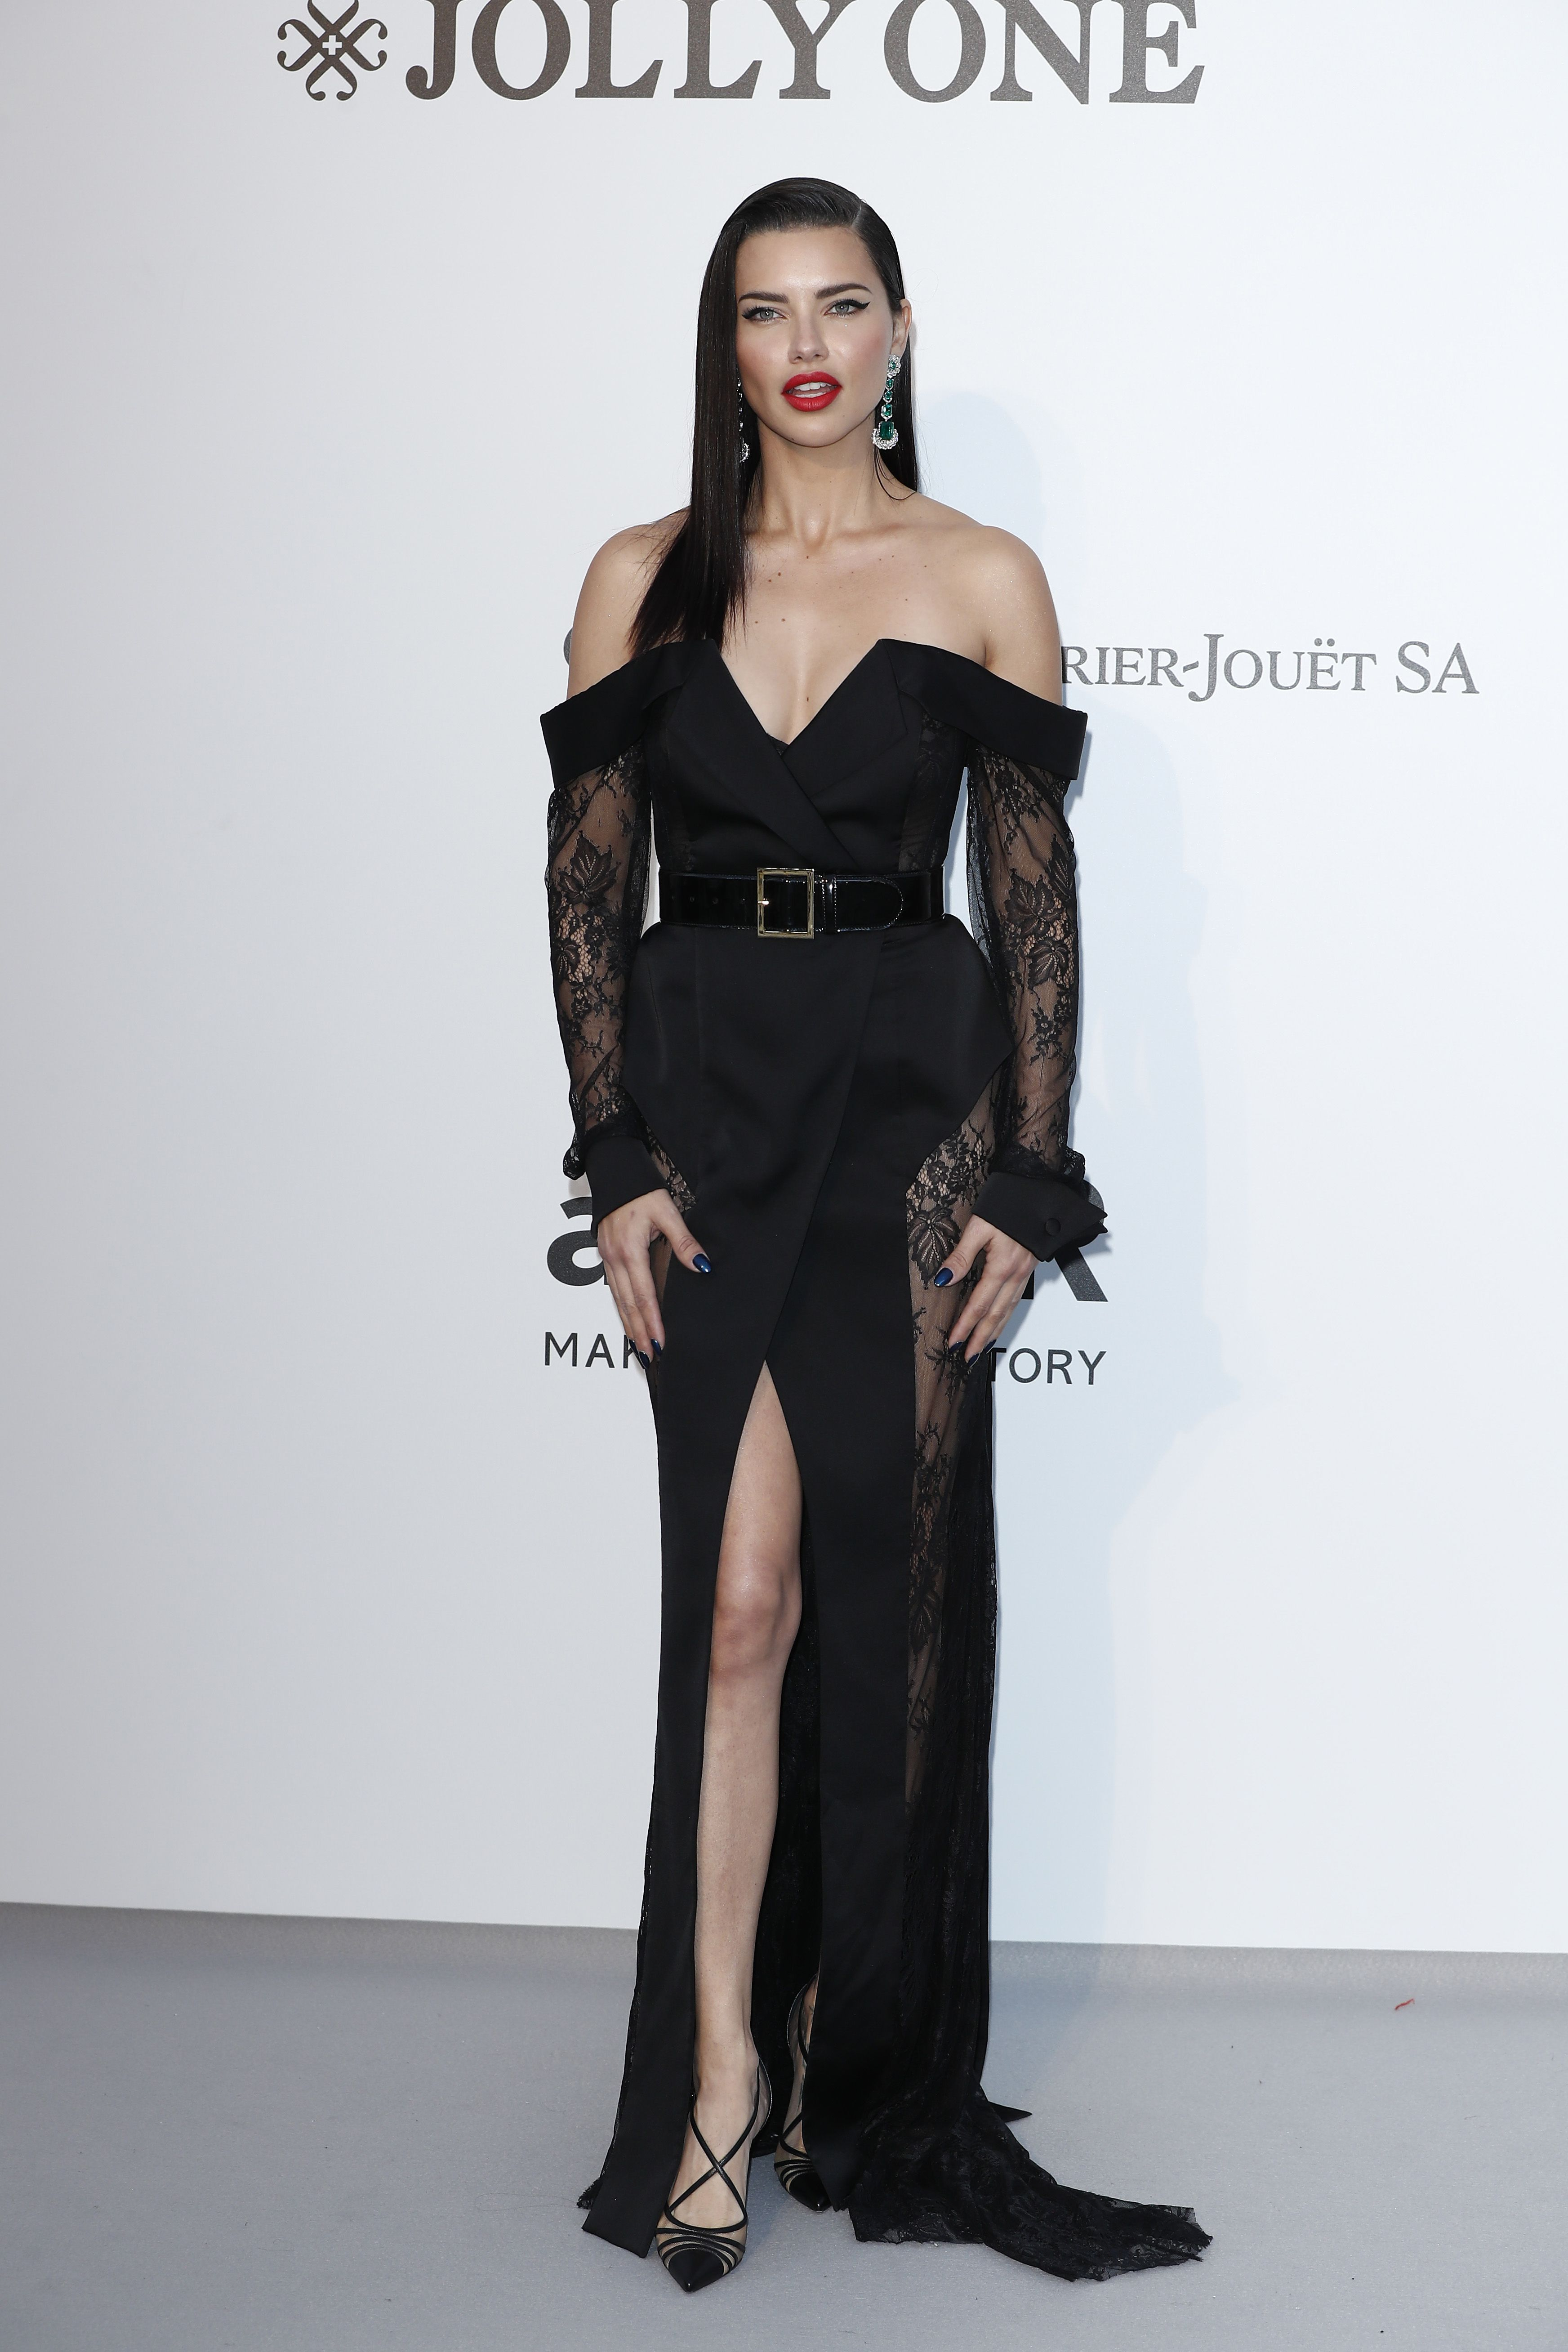 Adriana Lima In a black off-the-shoulder long sleeved gown by Ester Abner.